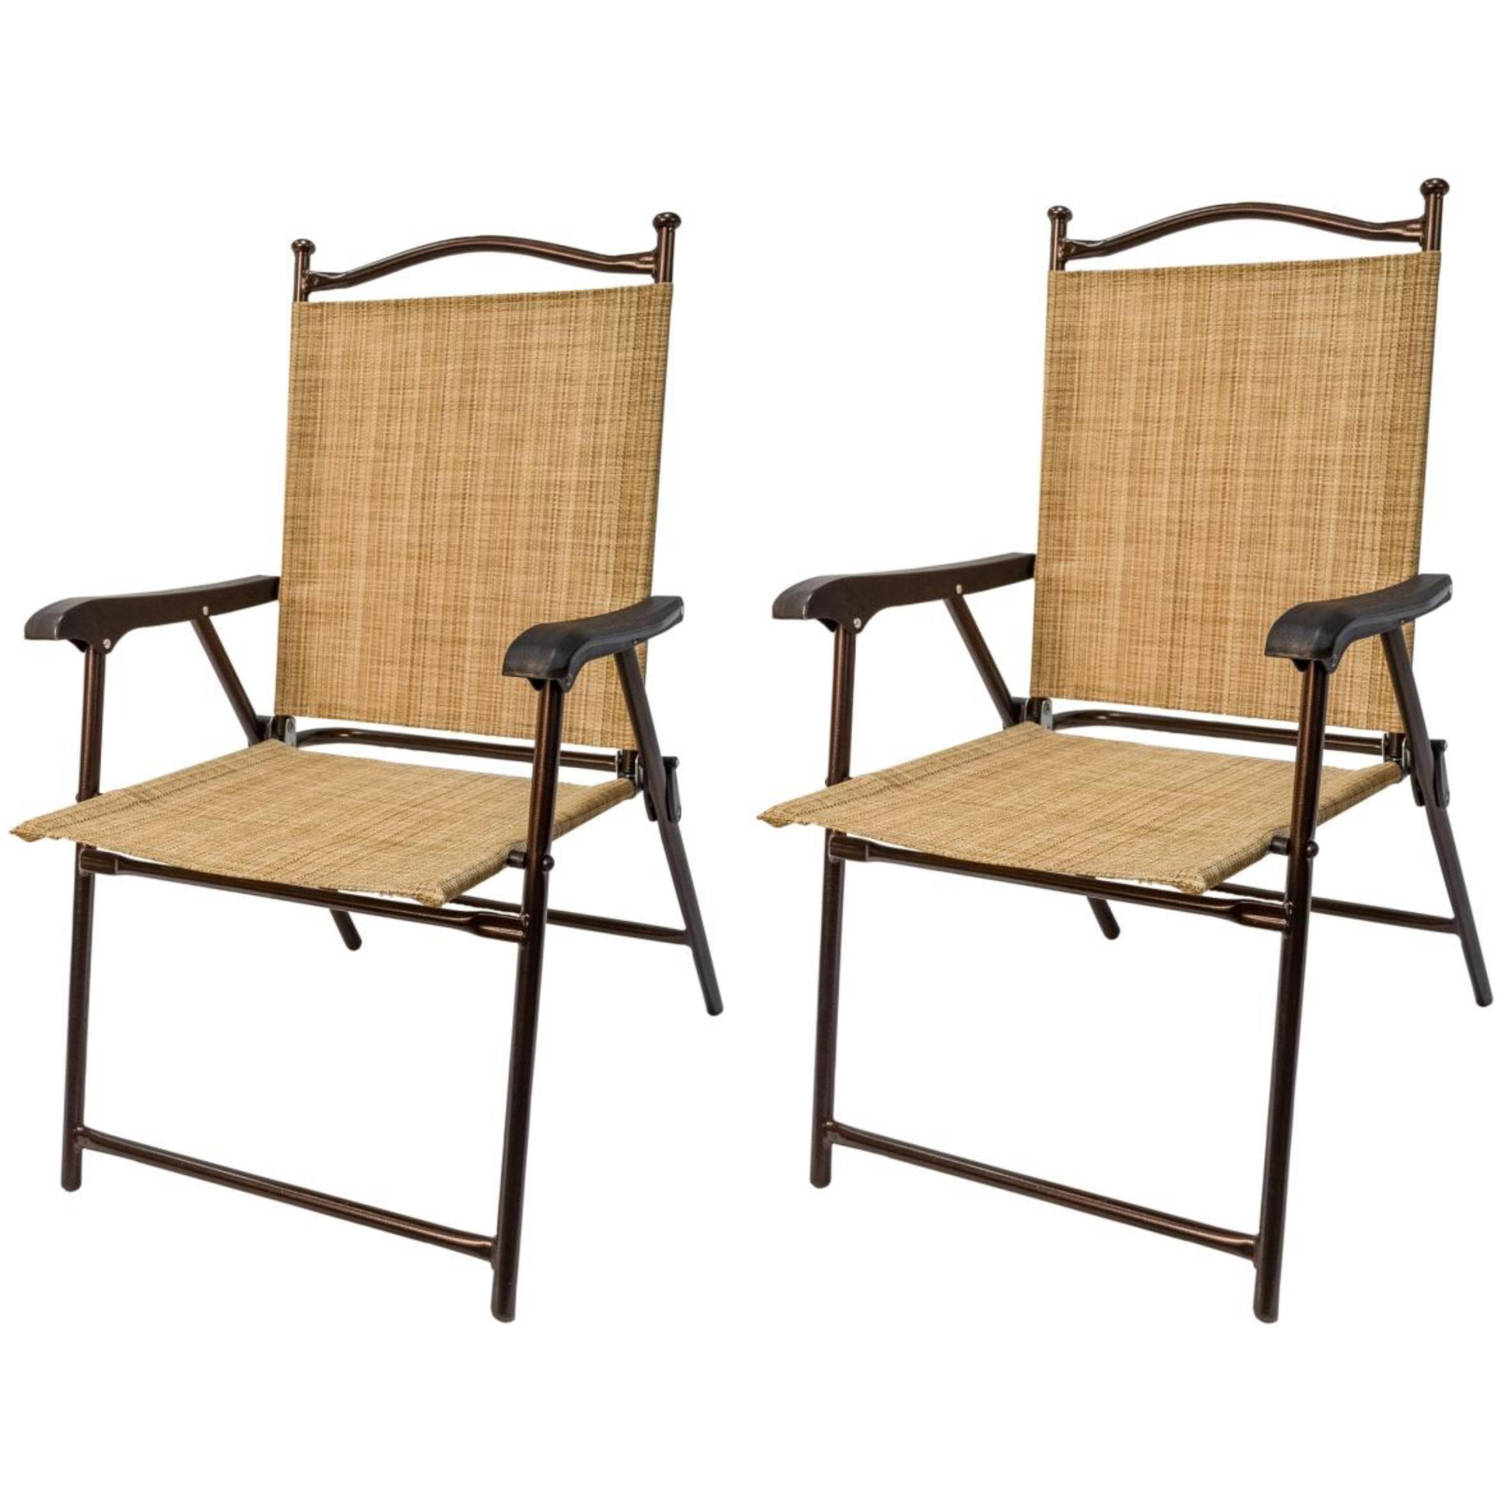 lawn chairs sling black outdoor chairs, bamboo, set of 2 PBOEYEX